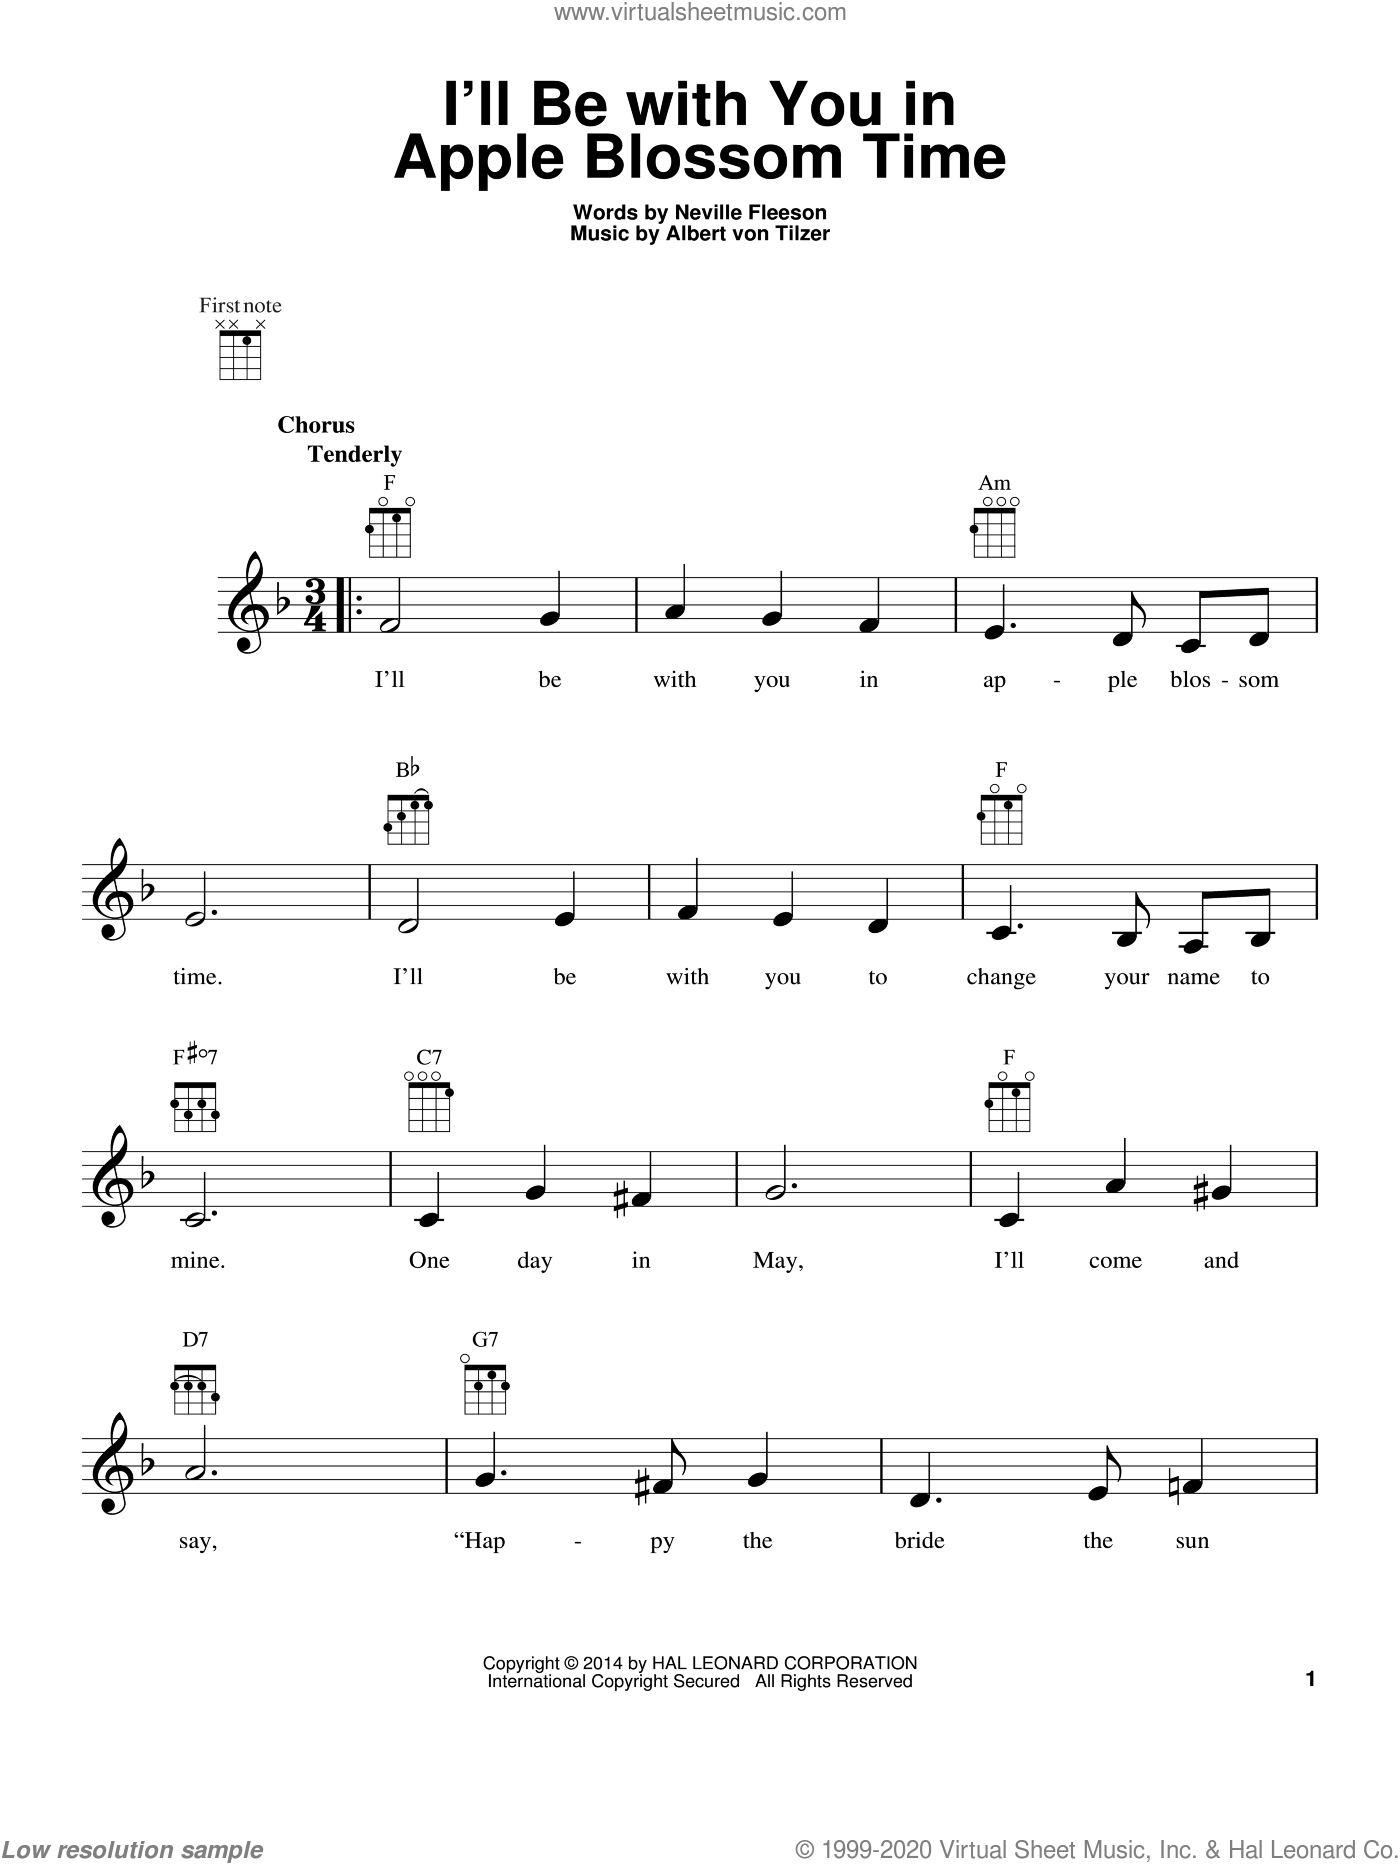 I'll Be With You In Apple Blossom Time sheet music for ukulele by Neville Fleeson